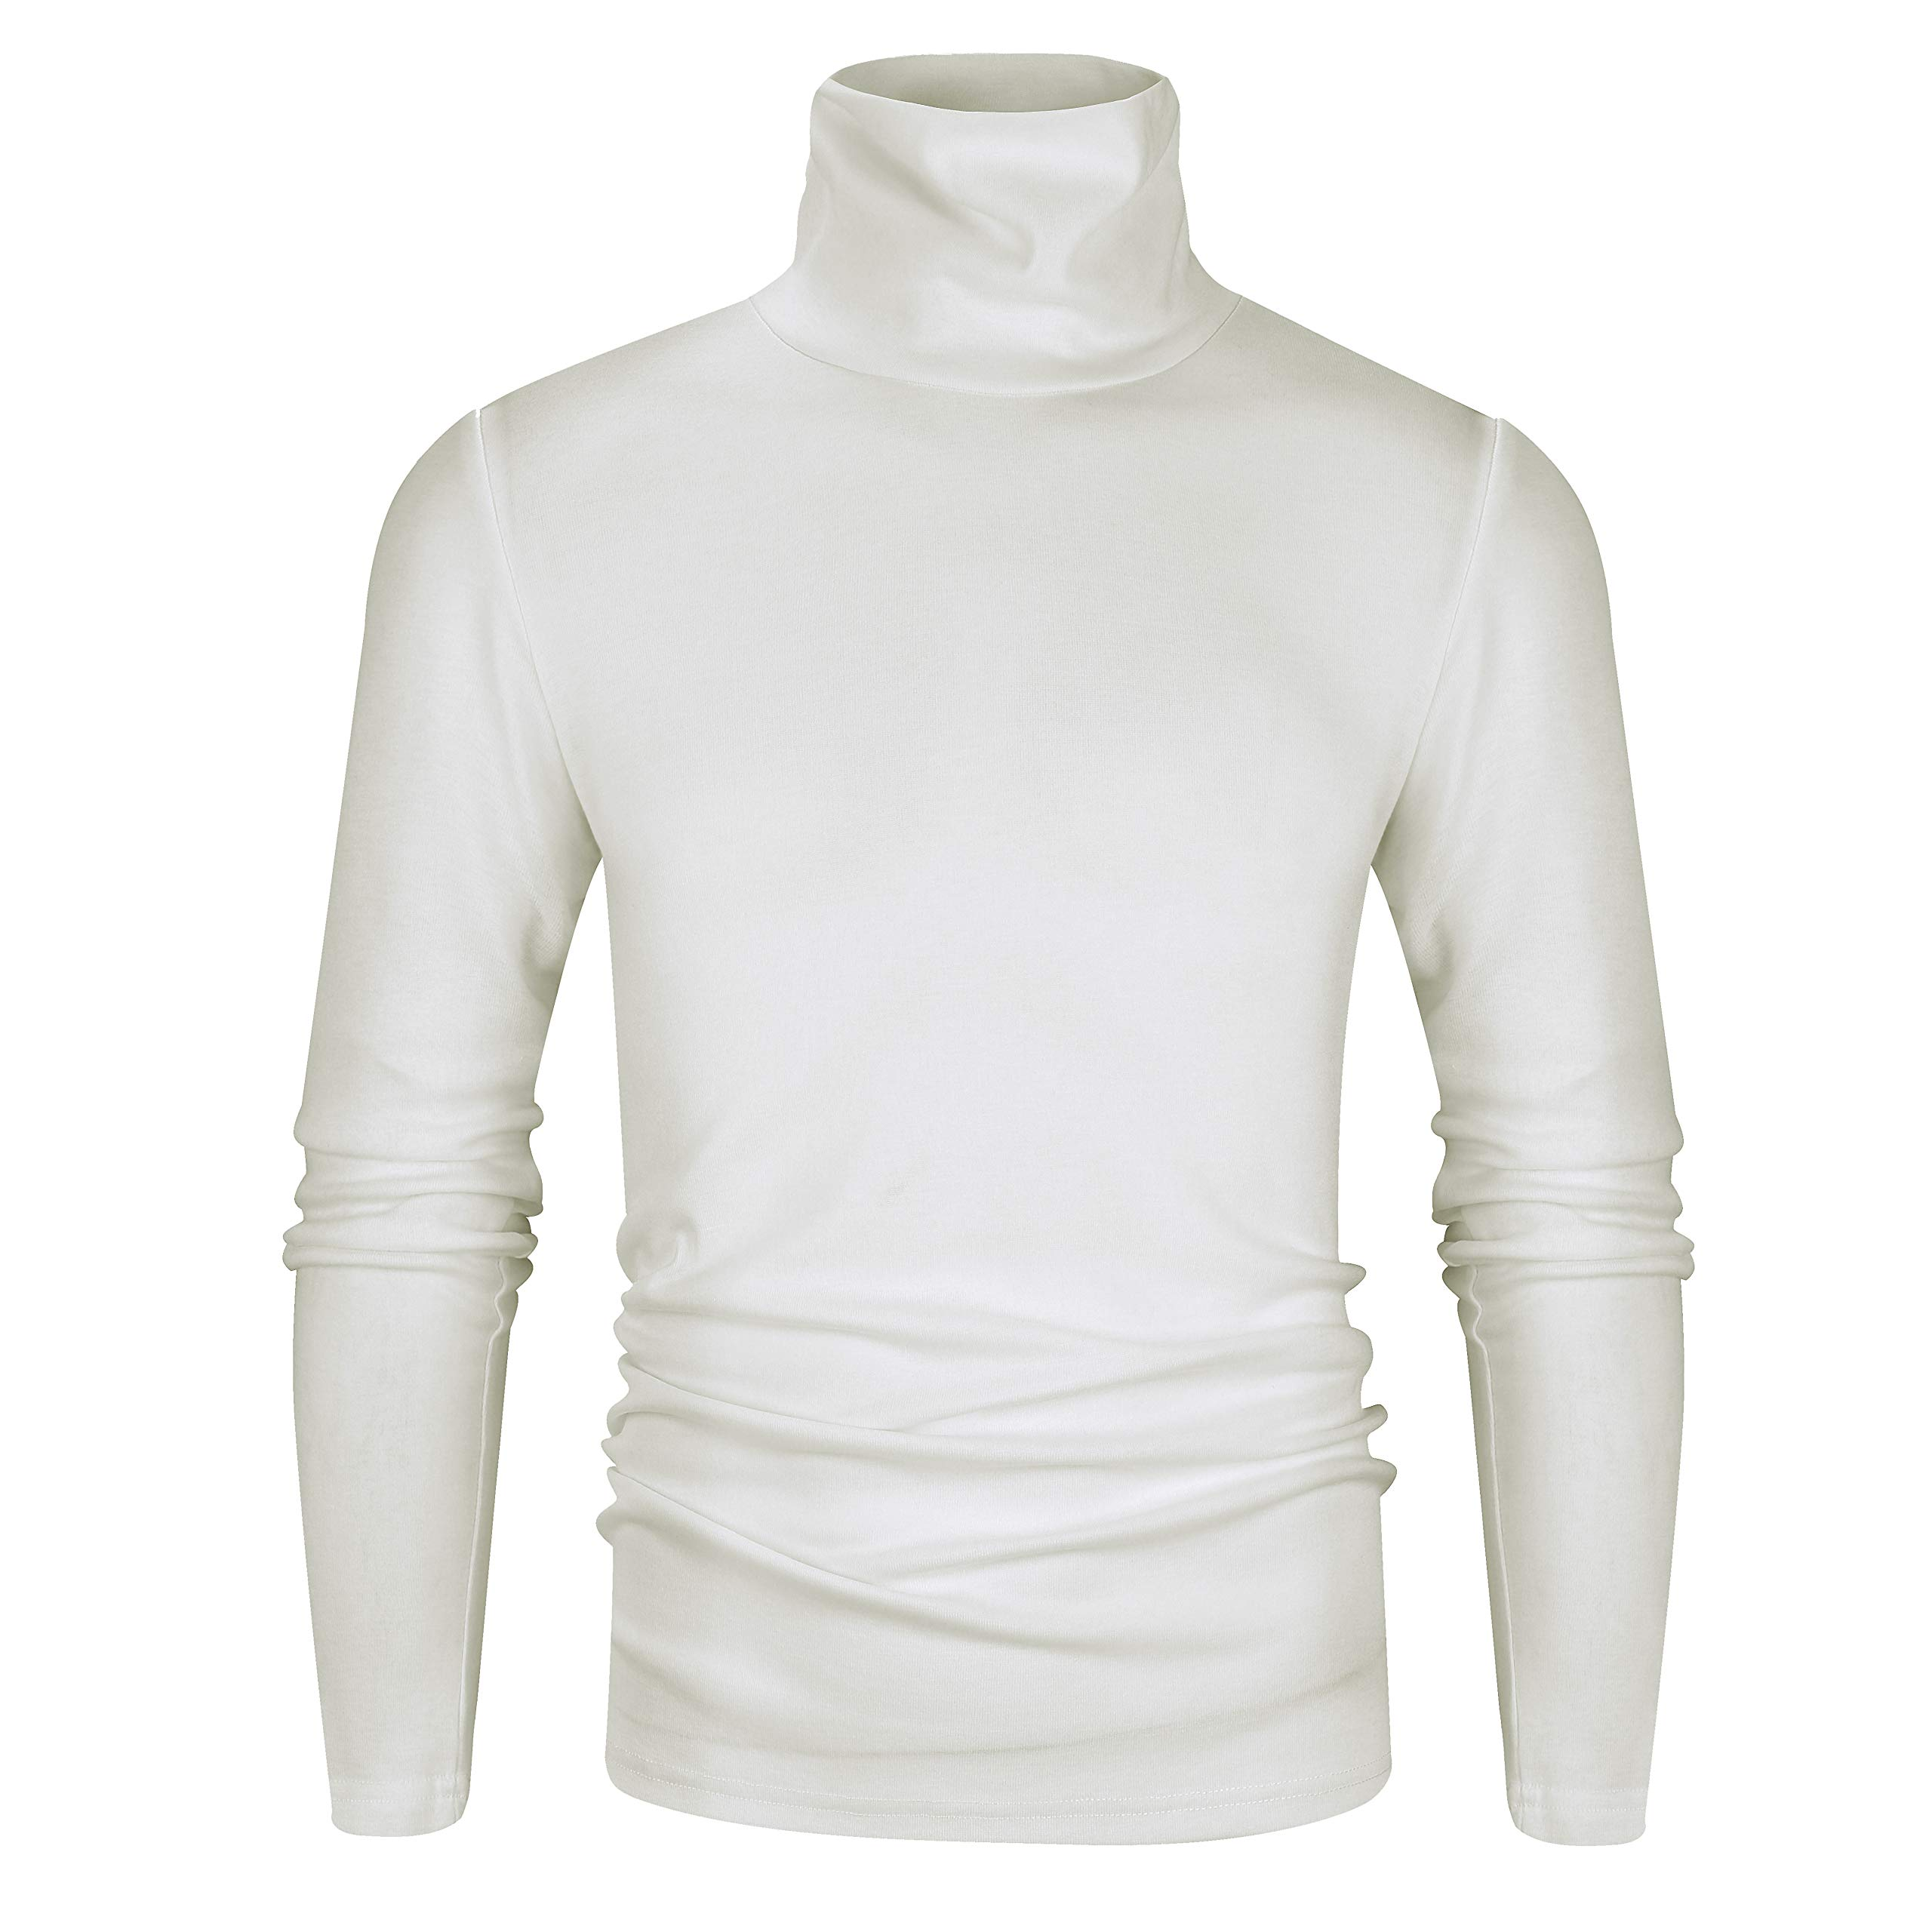 Fresca Men's White Long Sleeve Essential Turtleneck Wearable Sweater Pullover Basic Work Undershirt Supersoft Comfortable Thermal T-Shirts Ivory Large by Fresca